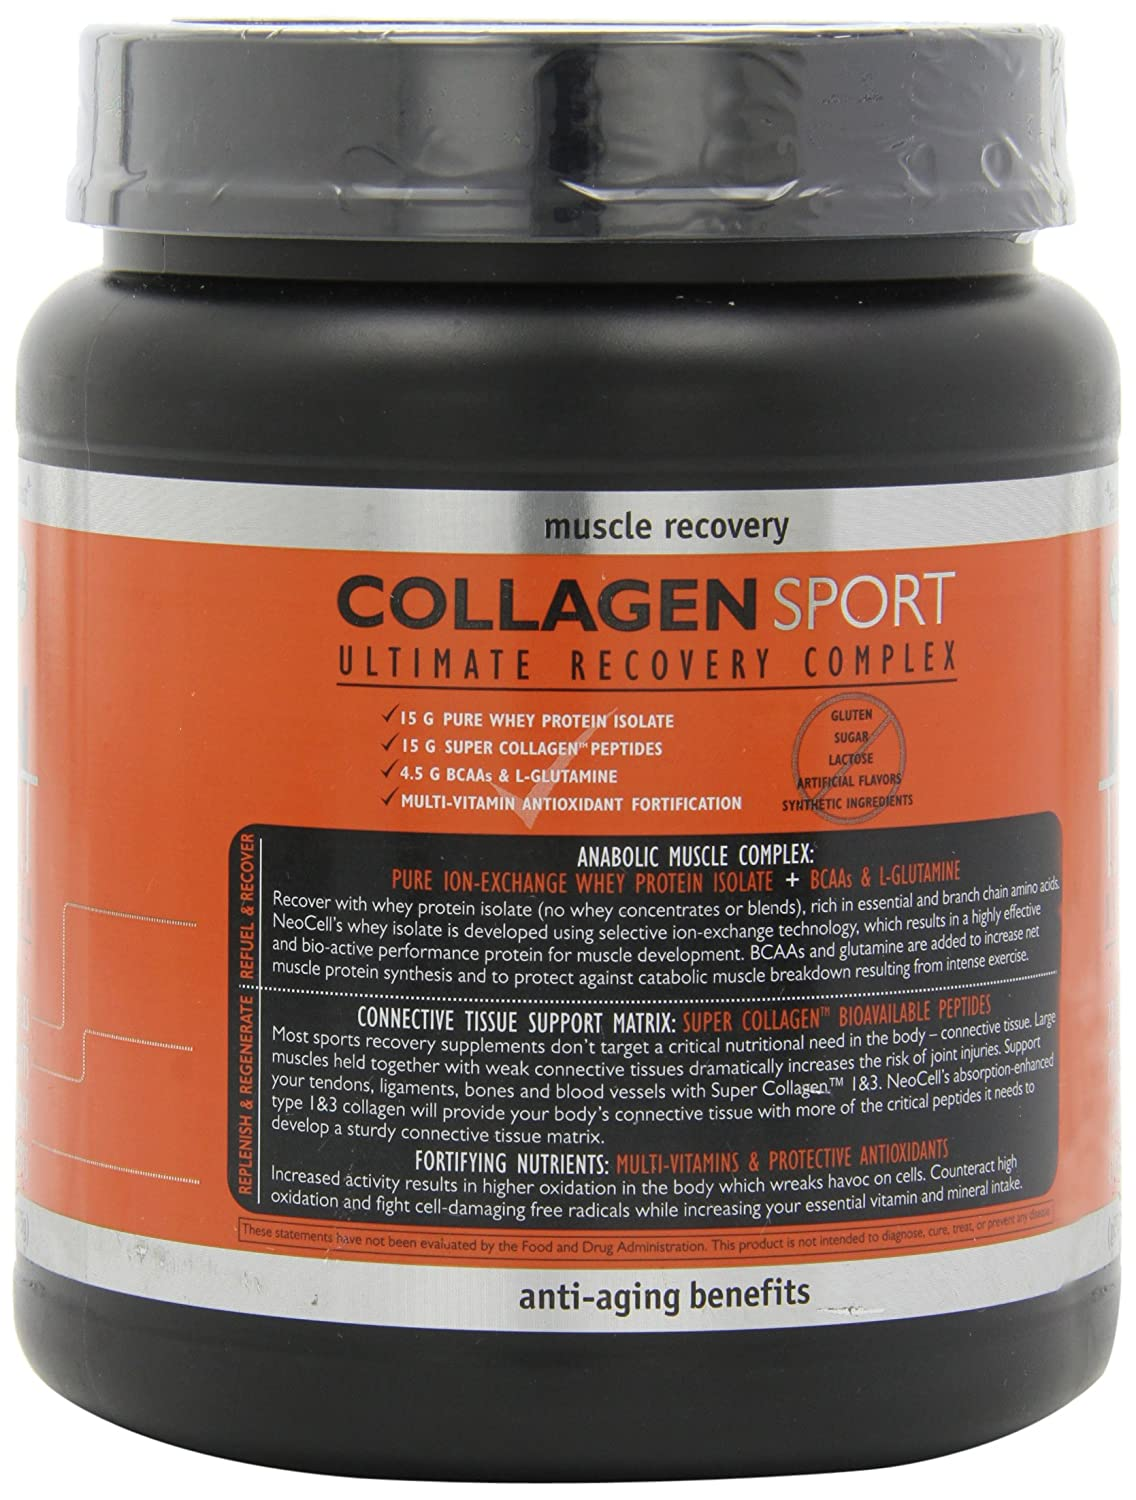 Amazon.com: Neocell Collagen Sport Whey IsolateComplex, 30 grams Protein per Serving, Belgium Chocolate, 23.8 Ounce: Health & Personal Care